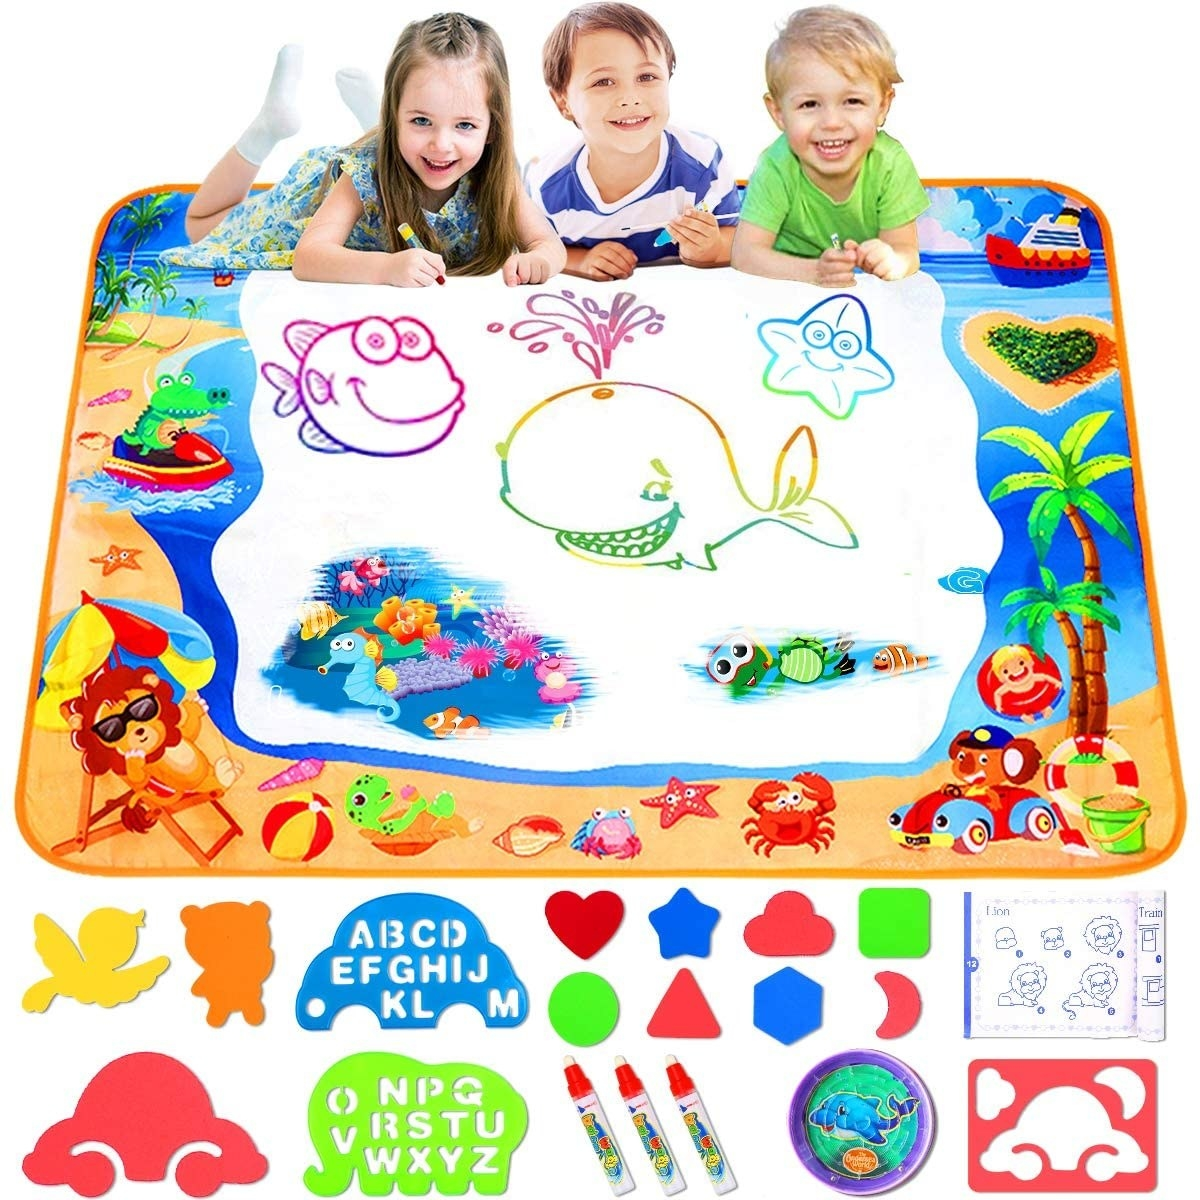 Kids drawing on a water-based magic mat